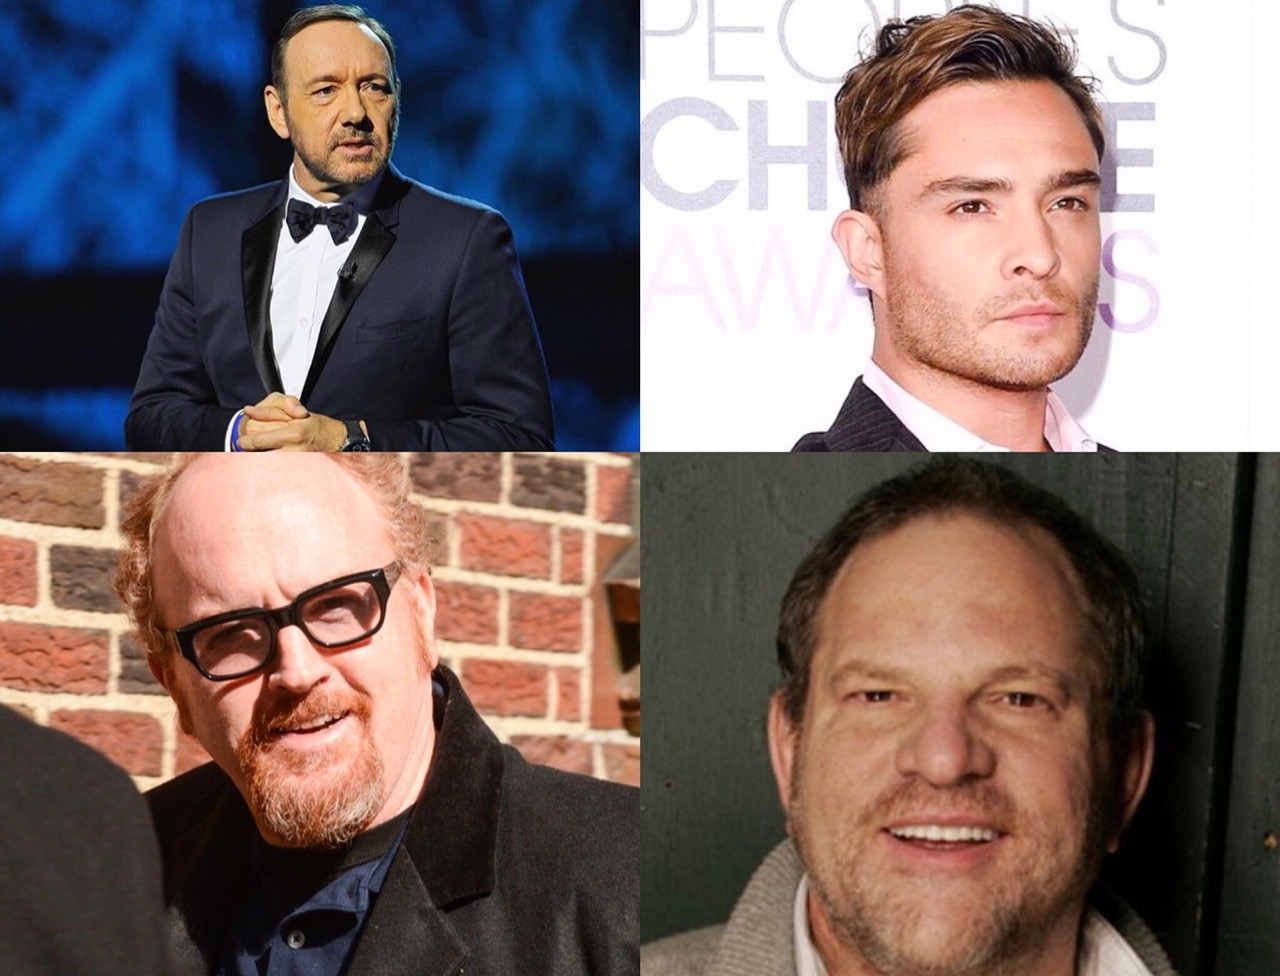 High profile men such as Kevin Spacey, Ed Westwick, Louis C.K. and Harvey Weinstein have all been accused of sexual assault.